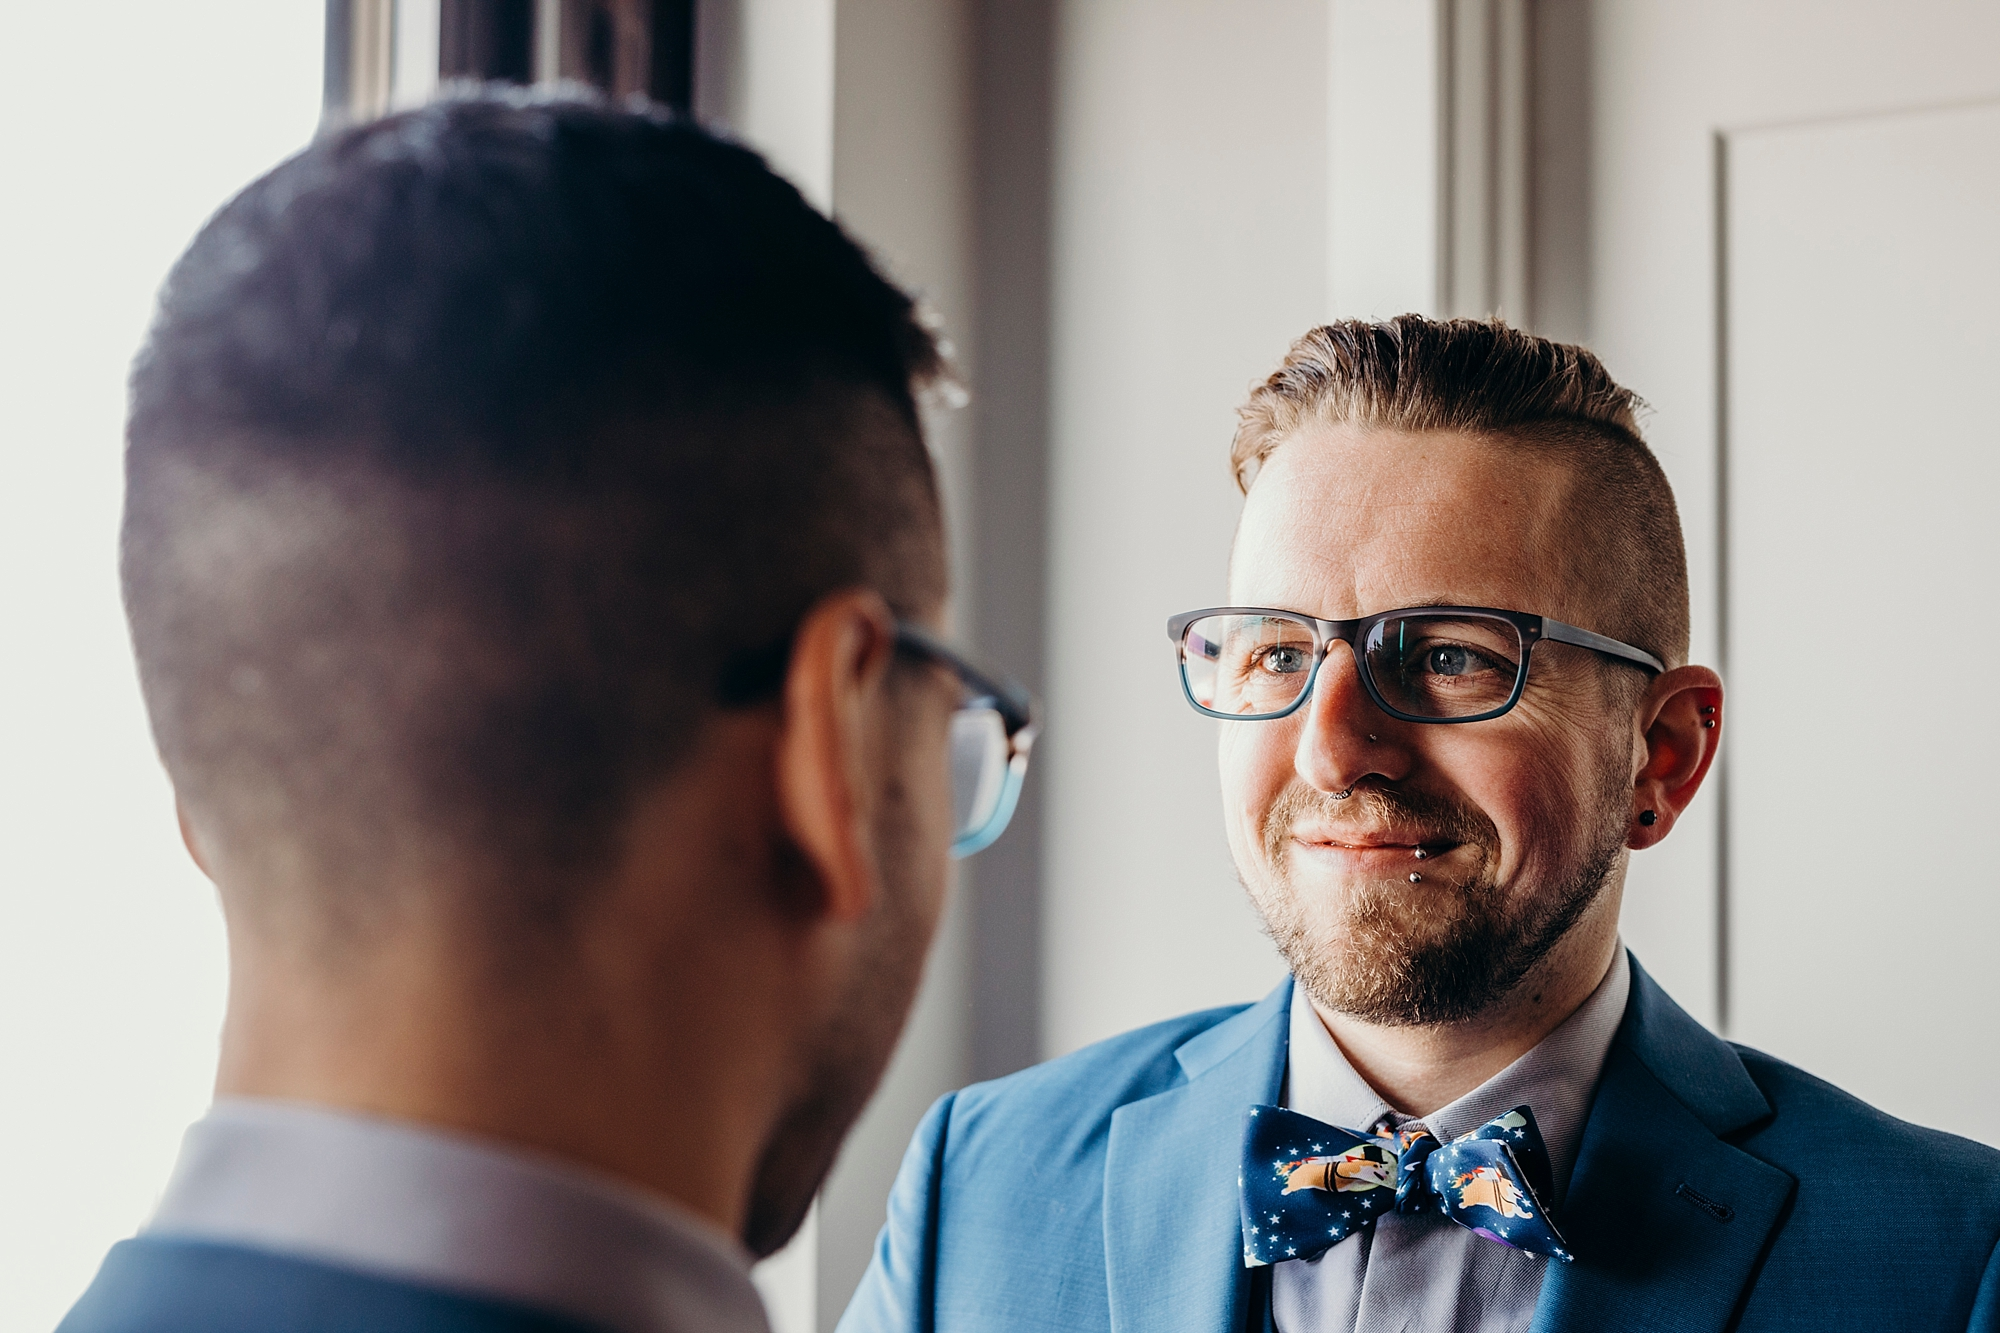 Joe_Mac_Creative_Philadelphia_Philly_LGBT_Gay_Engagement_Wedding_Photography__0052.jpg